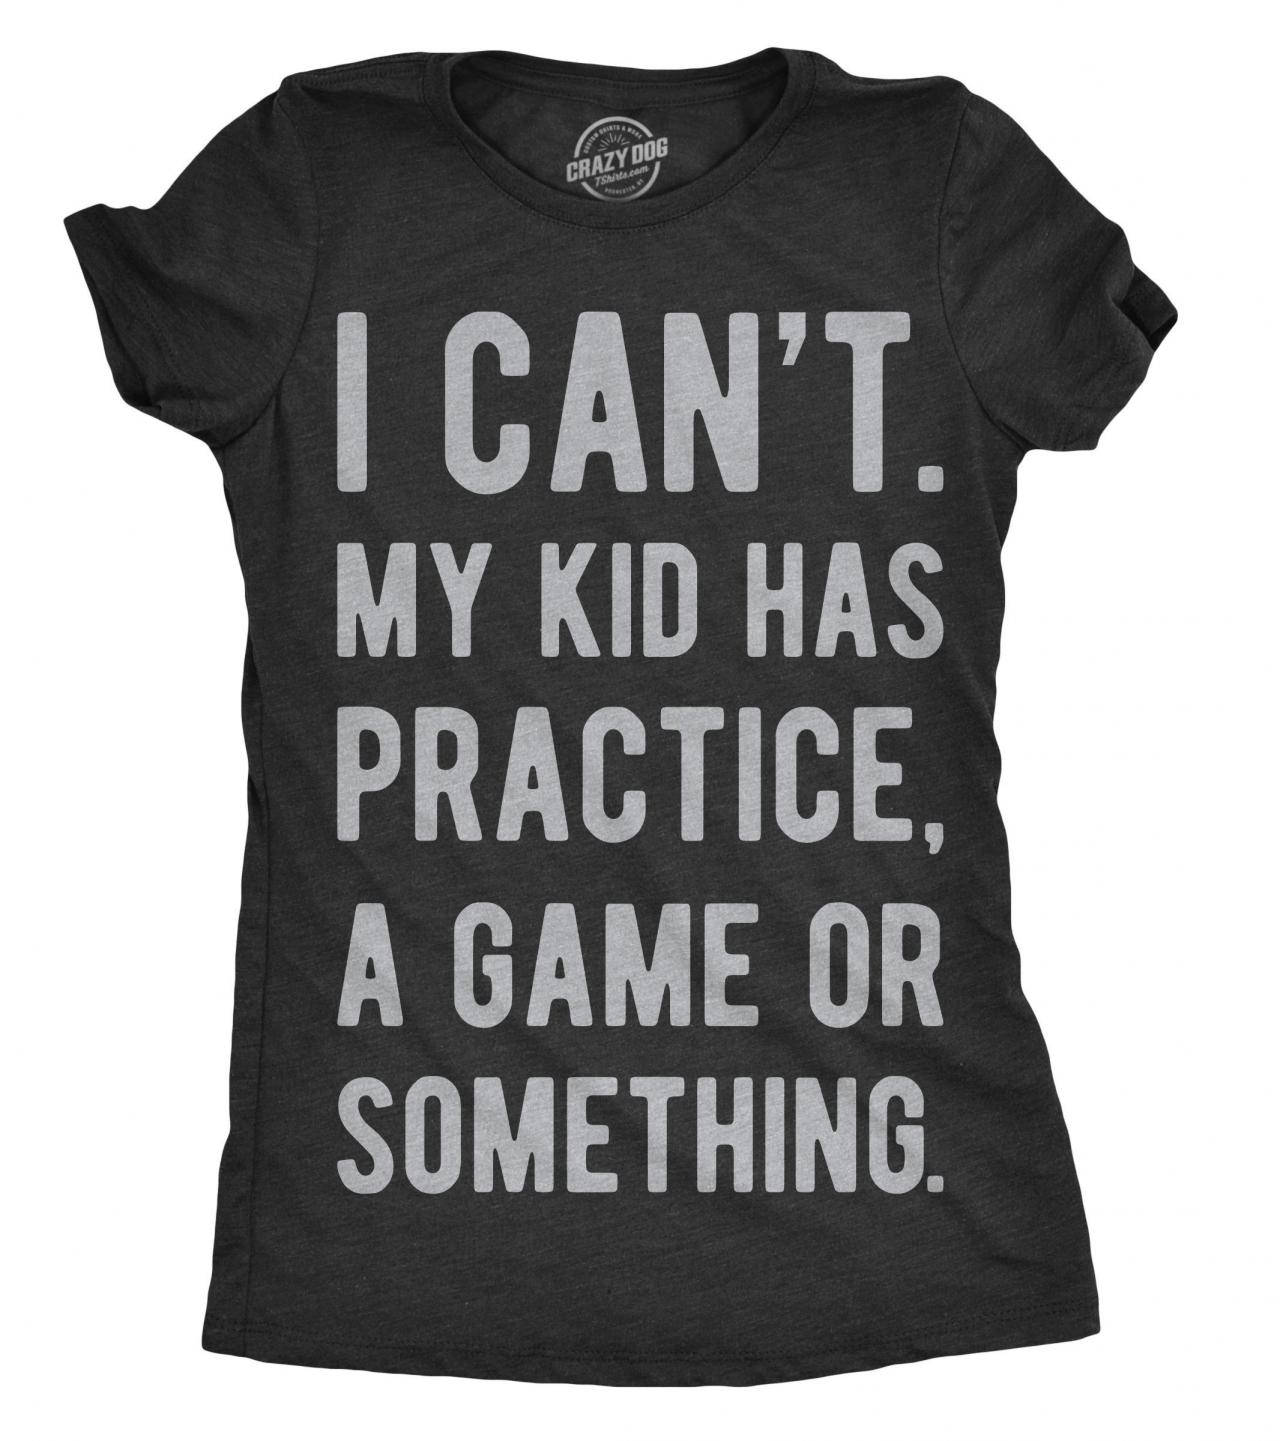 Baseball Mom Shirt, Mom Shirts With Sayings, Mom Shirt Funny, Cool Womens Shirt, I Cant My Kids Has Practice a Game or Something